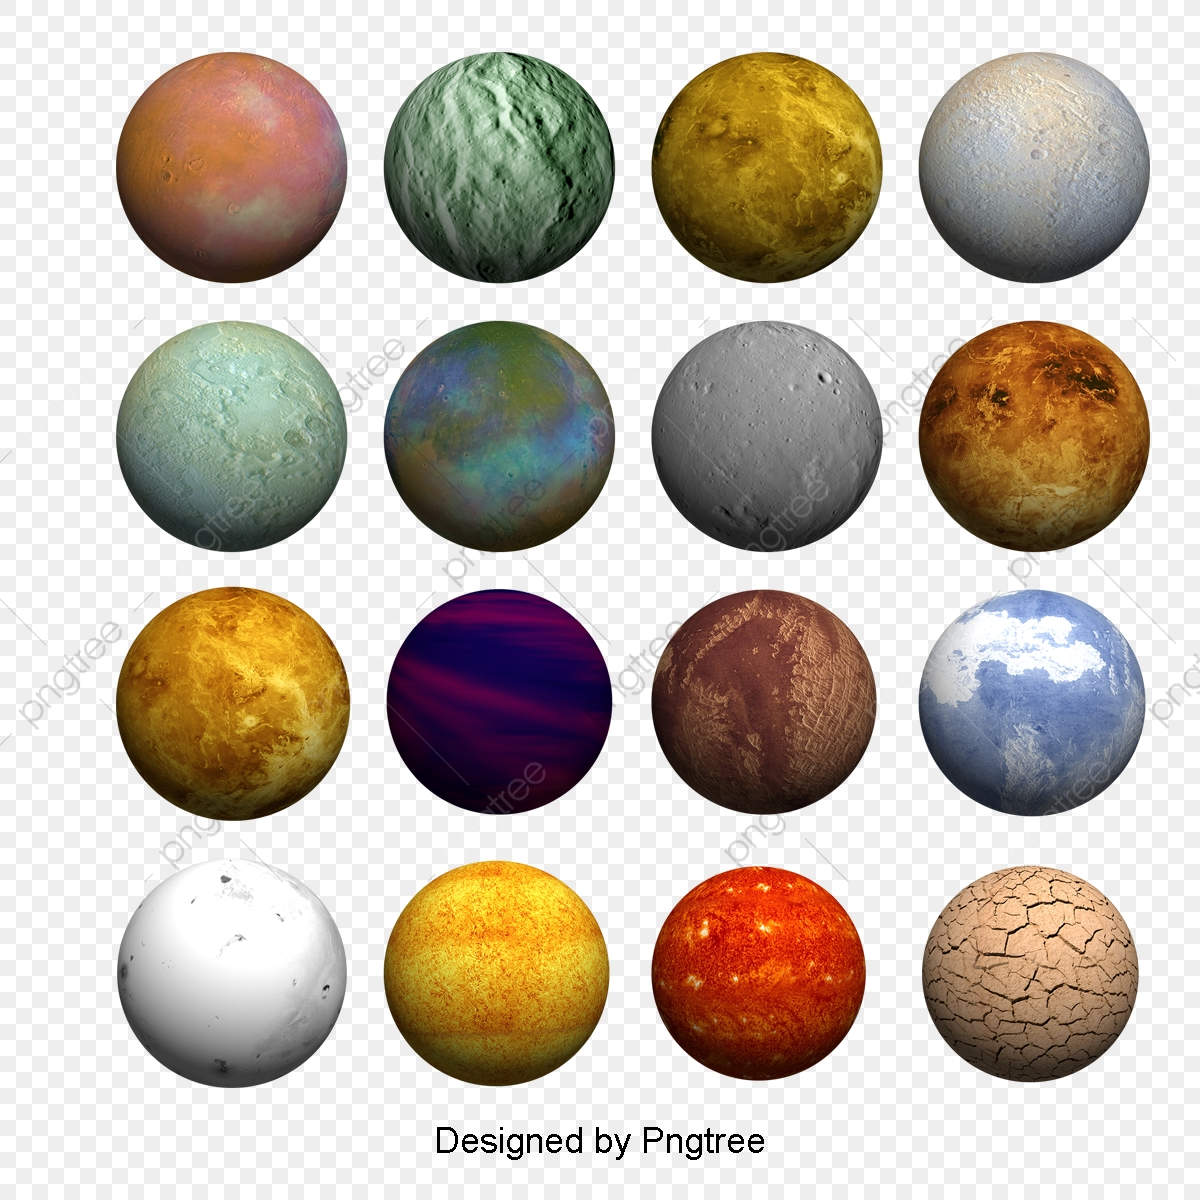 Galaxy clipart outer space. Galactic model of galaxies